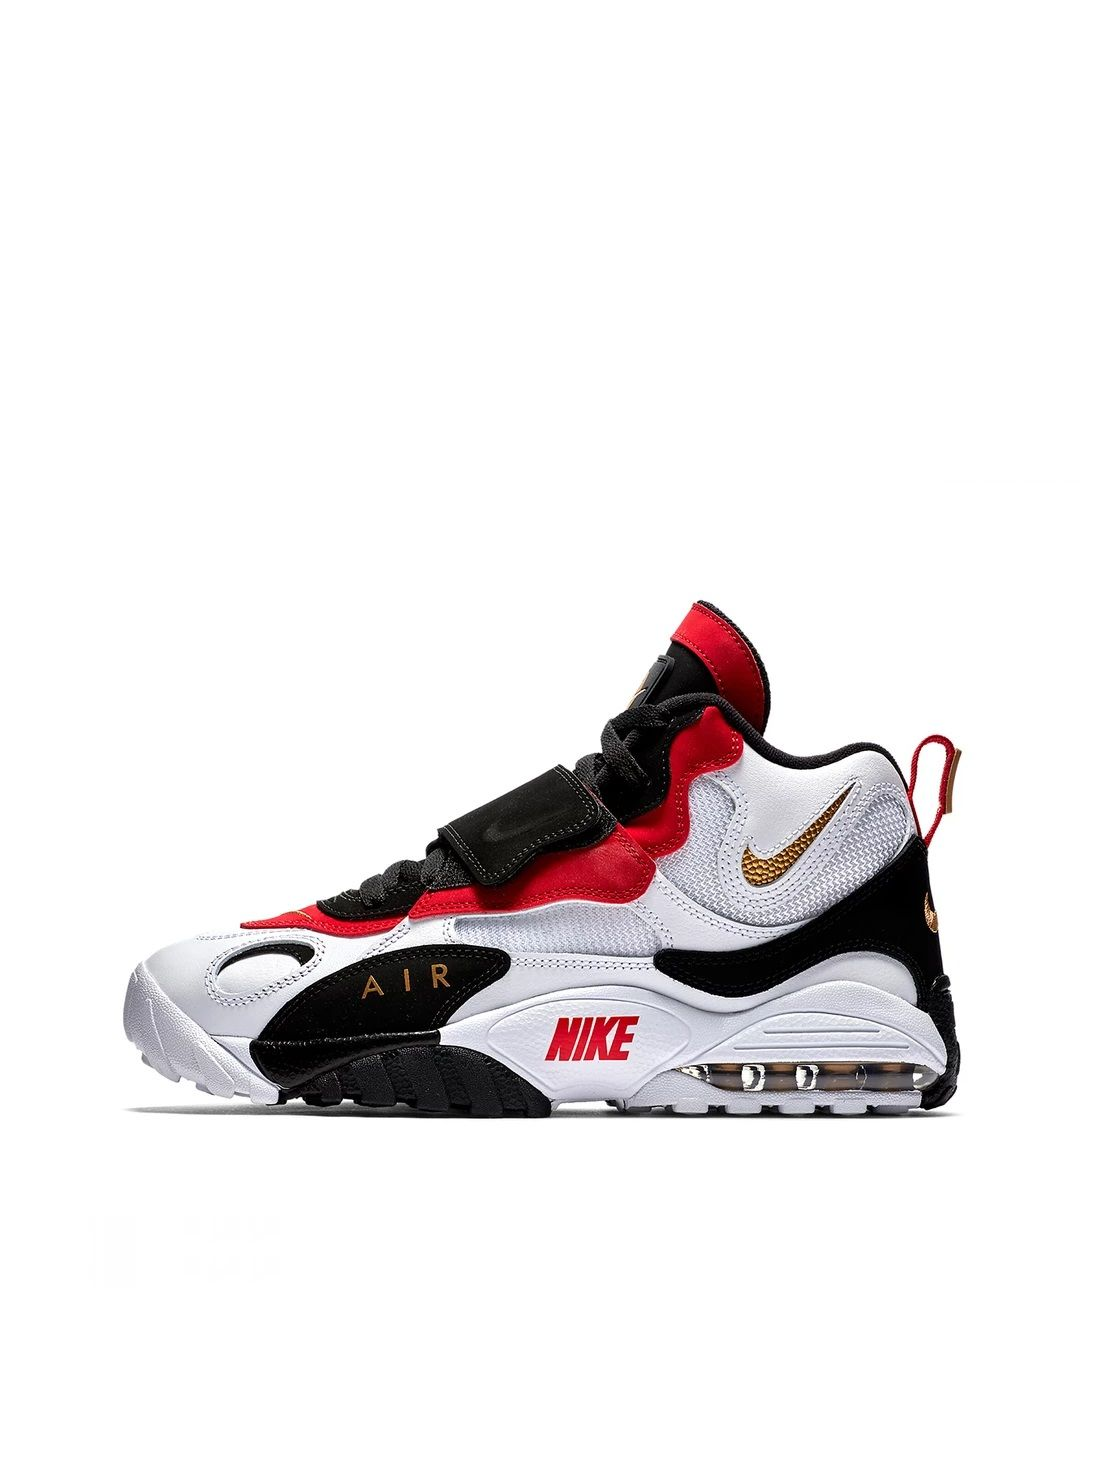 premium selection 73223 50070 Nike Air Speed Turf Max